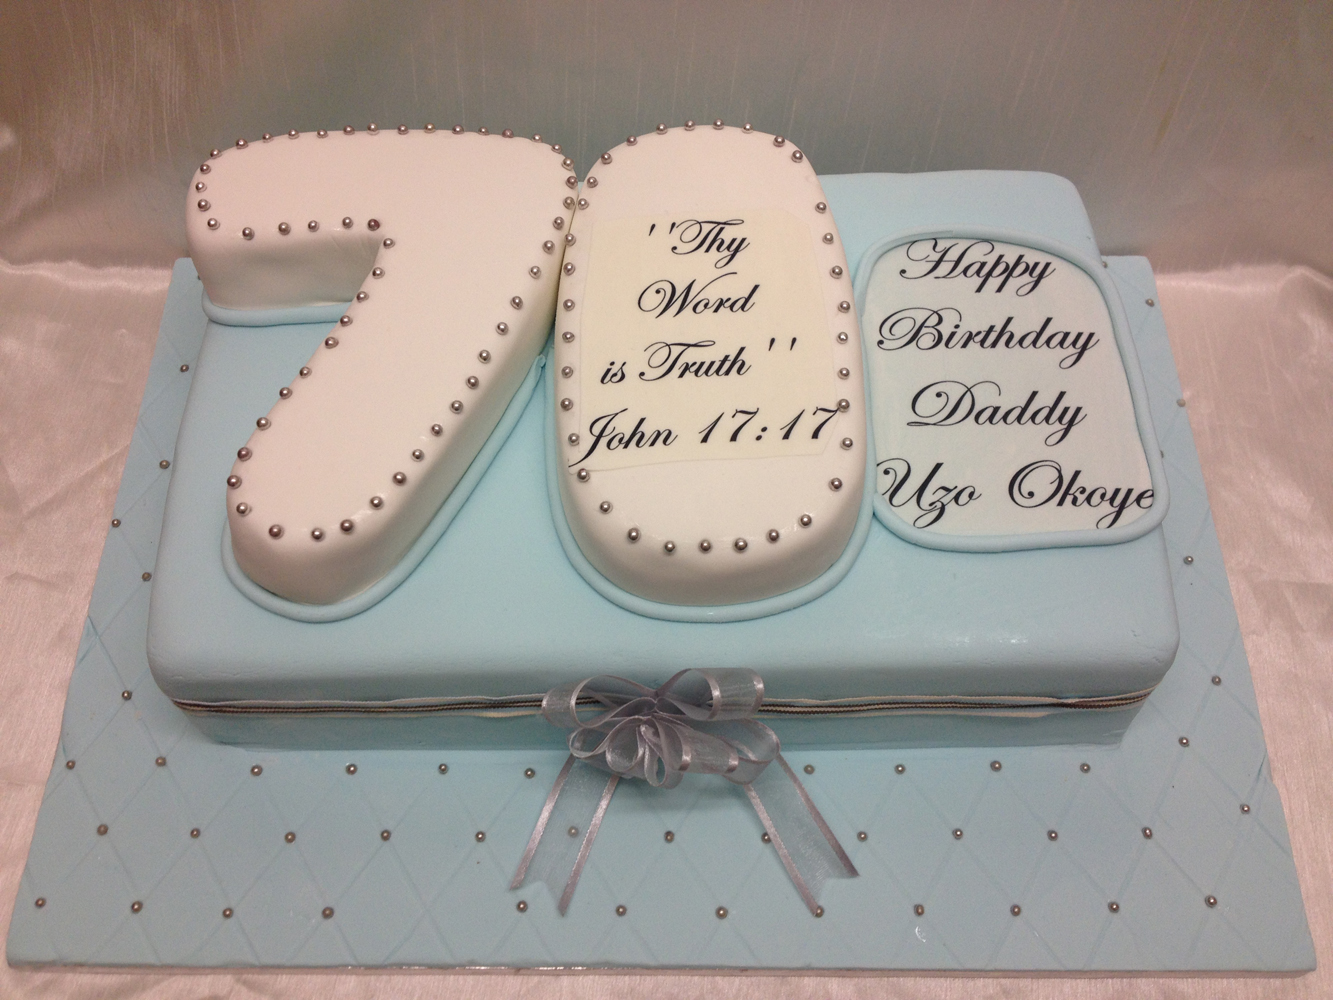 Stupendous 8 70 Birthday Cakes For Women Photo 70 Birthday Cake Ideas Funny Birthday Cards Online Fluifree Goldxyz